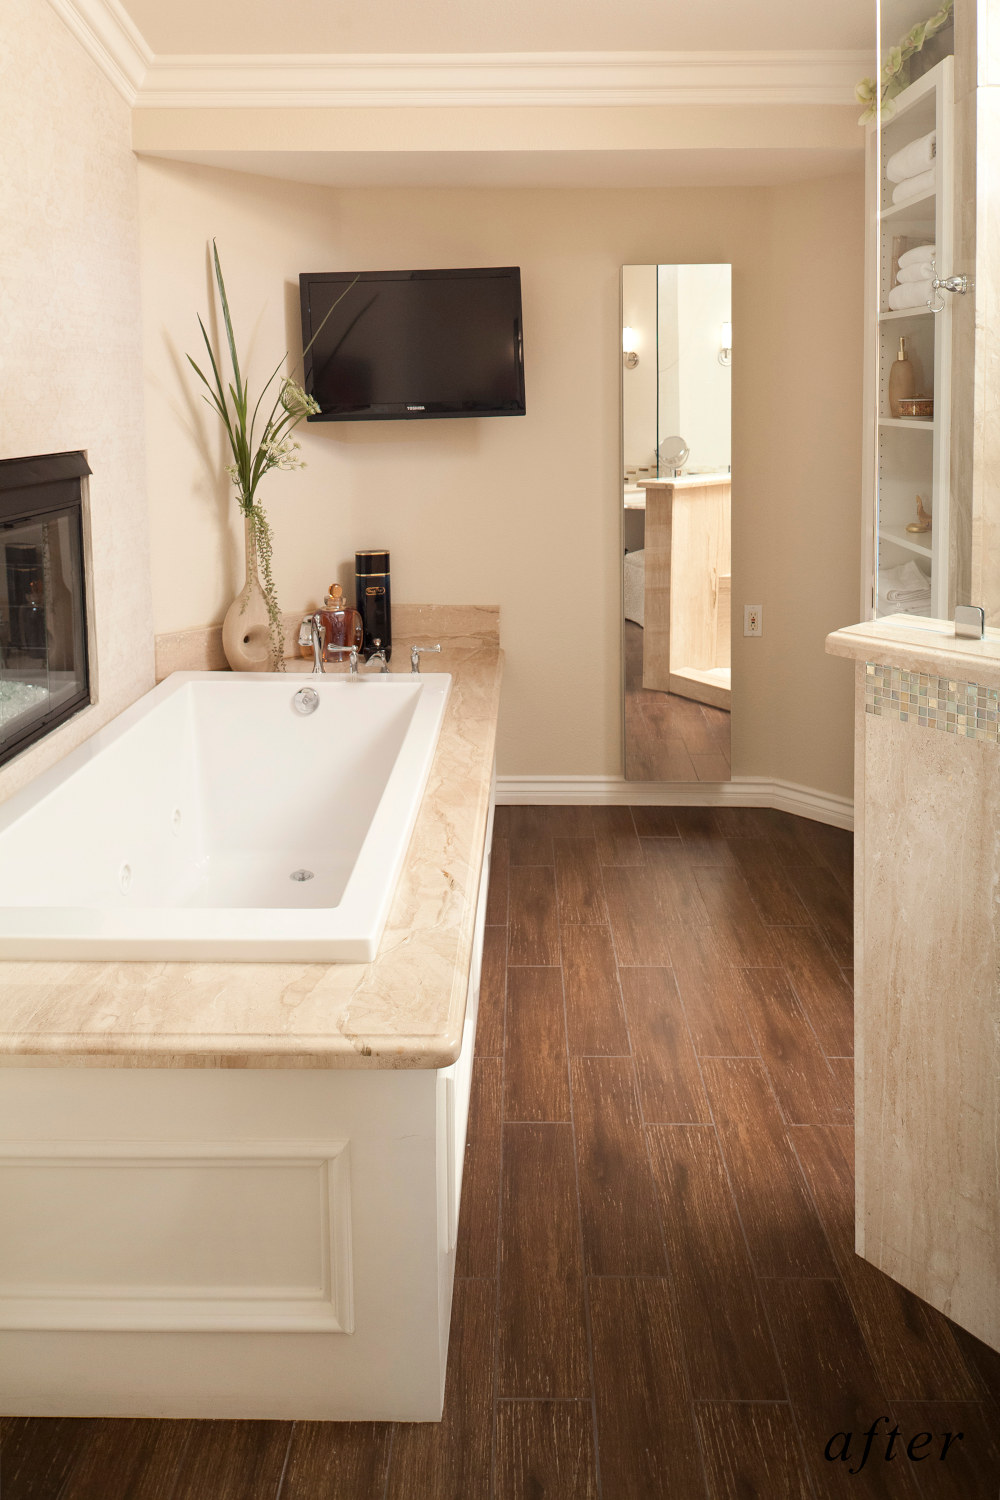 After remodel image: new master bath with brown marble, beige colored walls, brown tile floor.